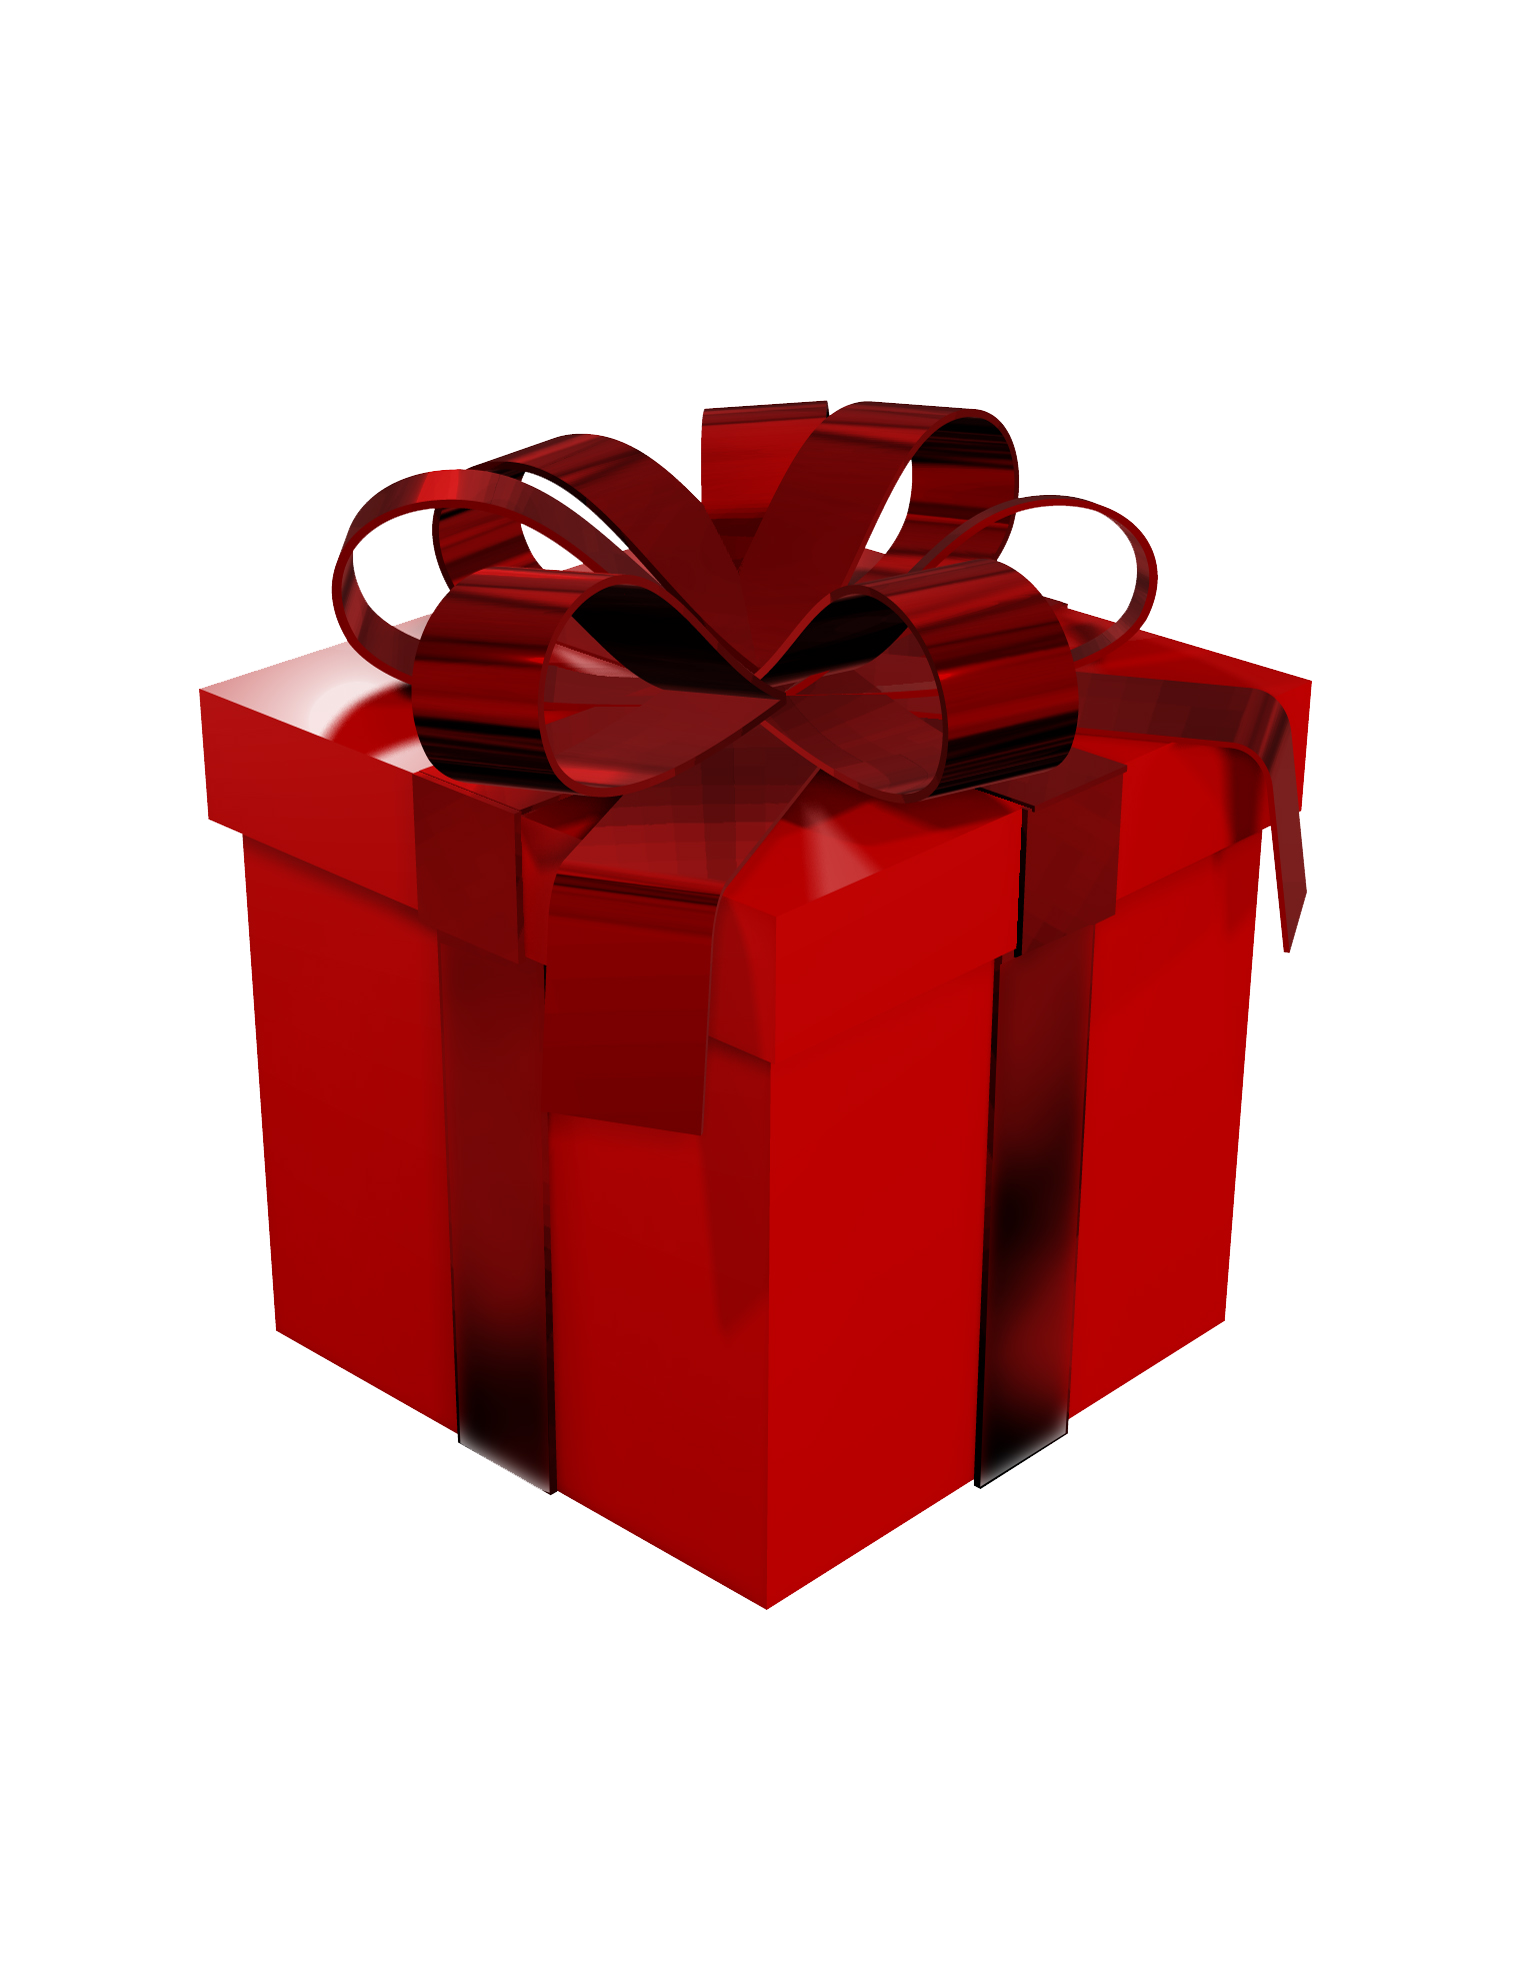 Red Gift Box Clipart